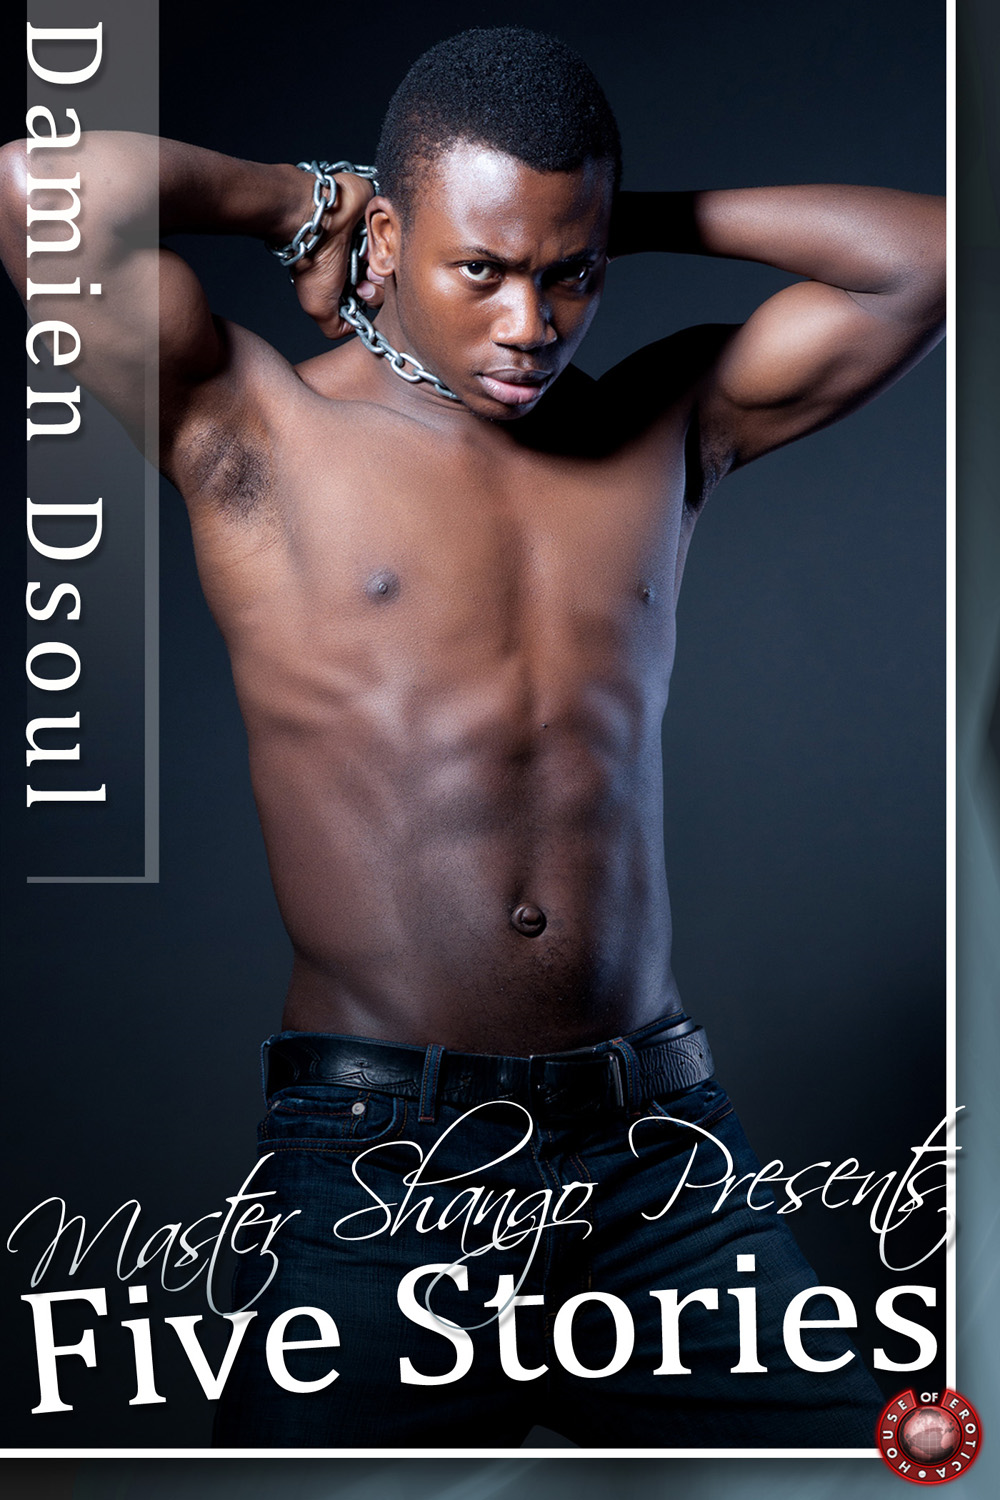 Master Shango Presents – Five Stories (BDSM Erotica) [Kindle Edition]